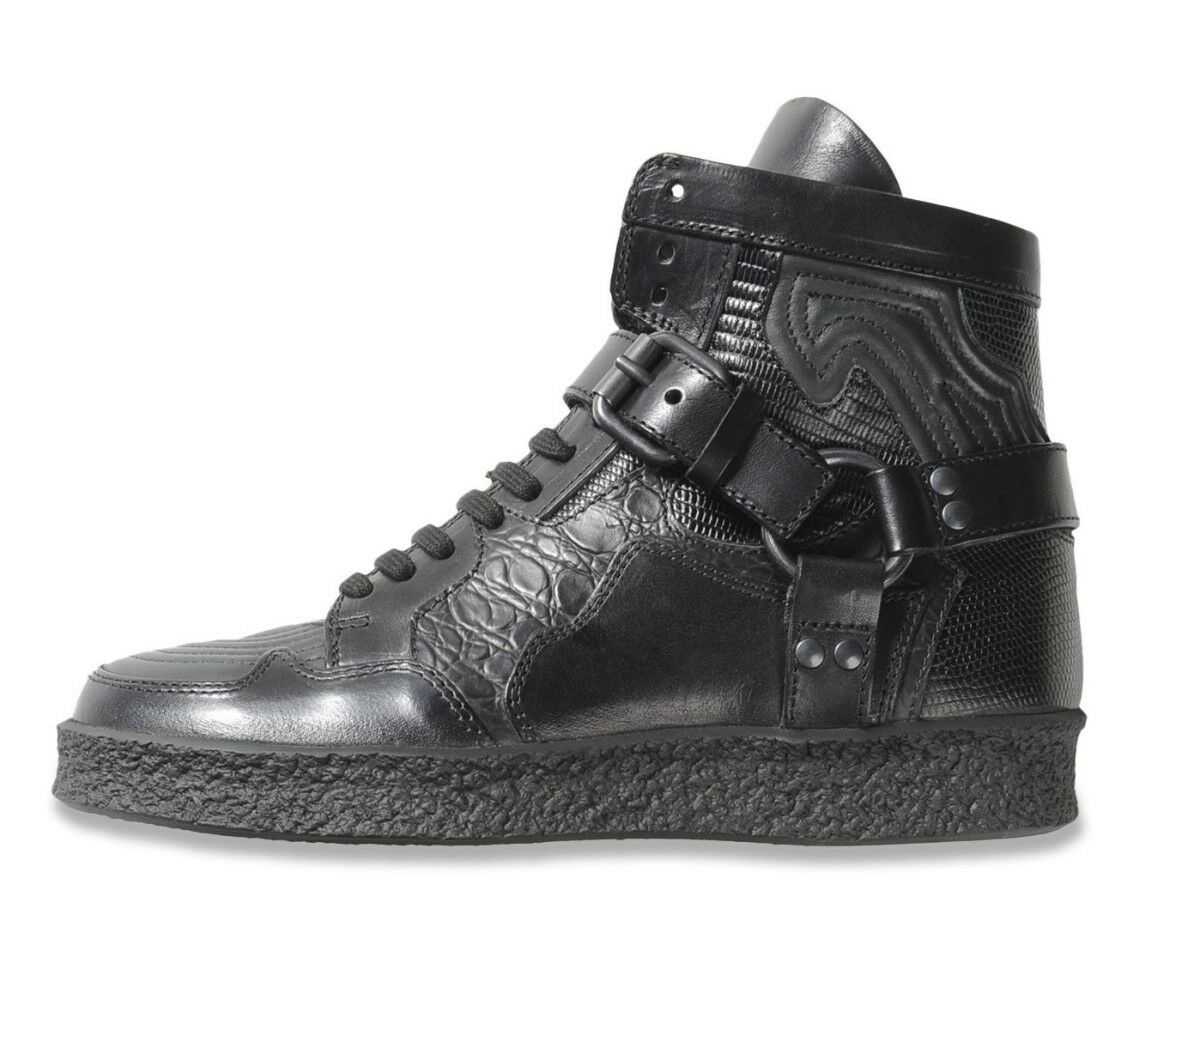 cd90c36db6 Diesel Black Gold Womens Hi High Top Leather Sneaker Shoes Boots RRP 380 €